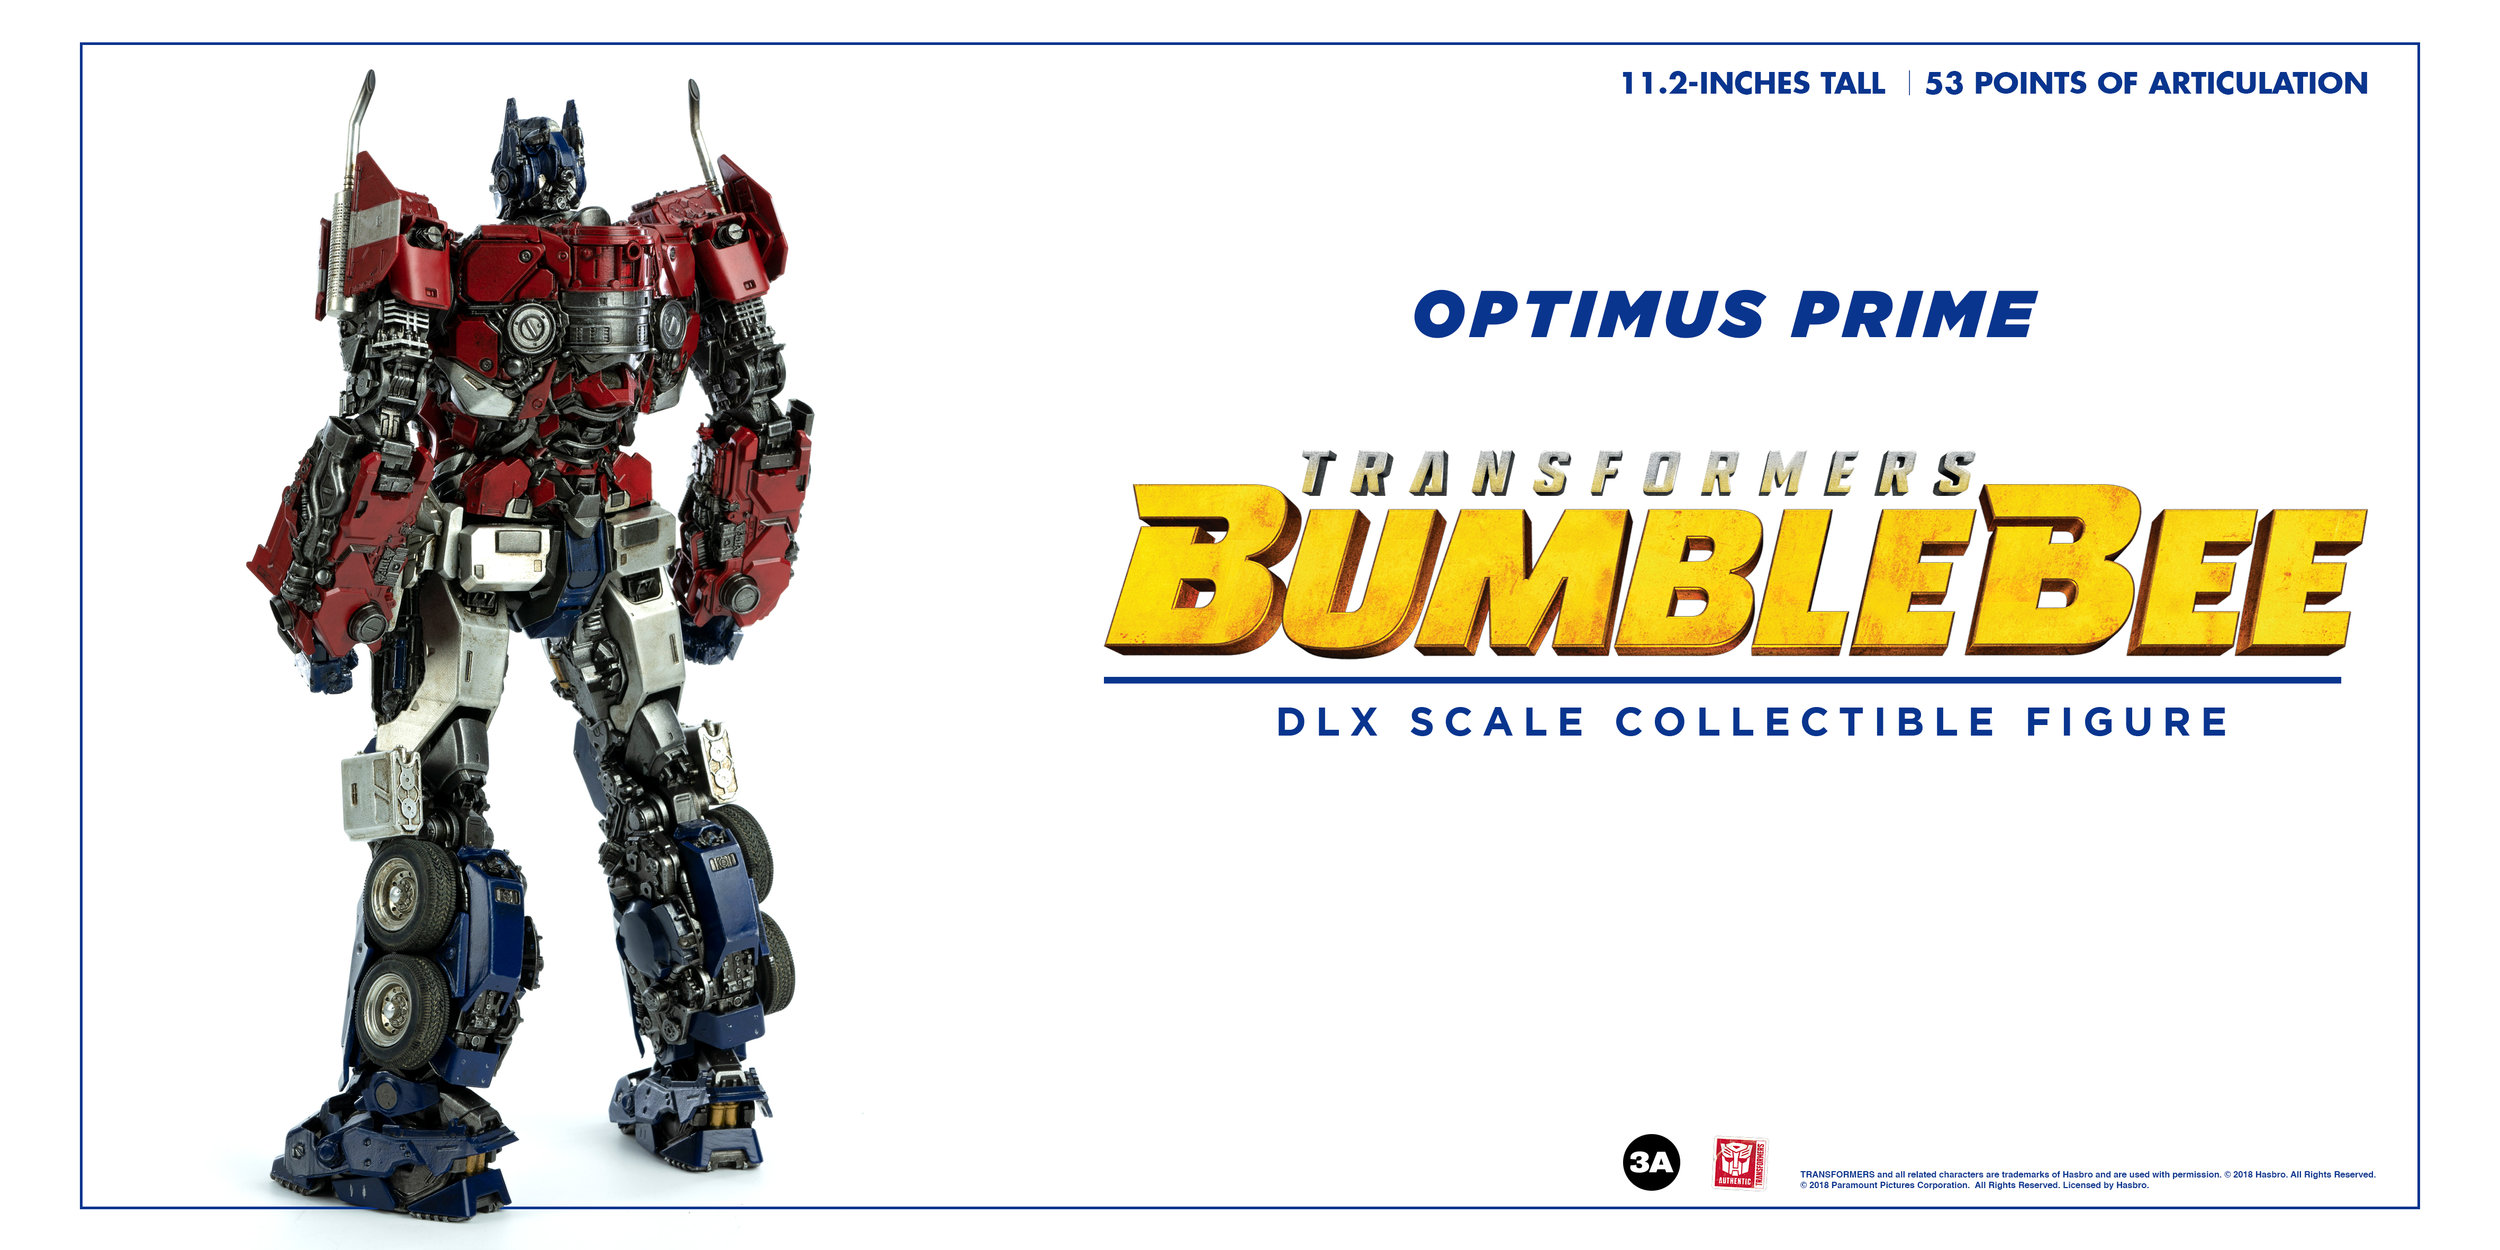 Transformers Bumblebee DLX and Premium Scale Collectible Figures  - Page 2 OP_DLX_ENG_5904_wide